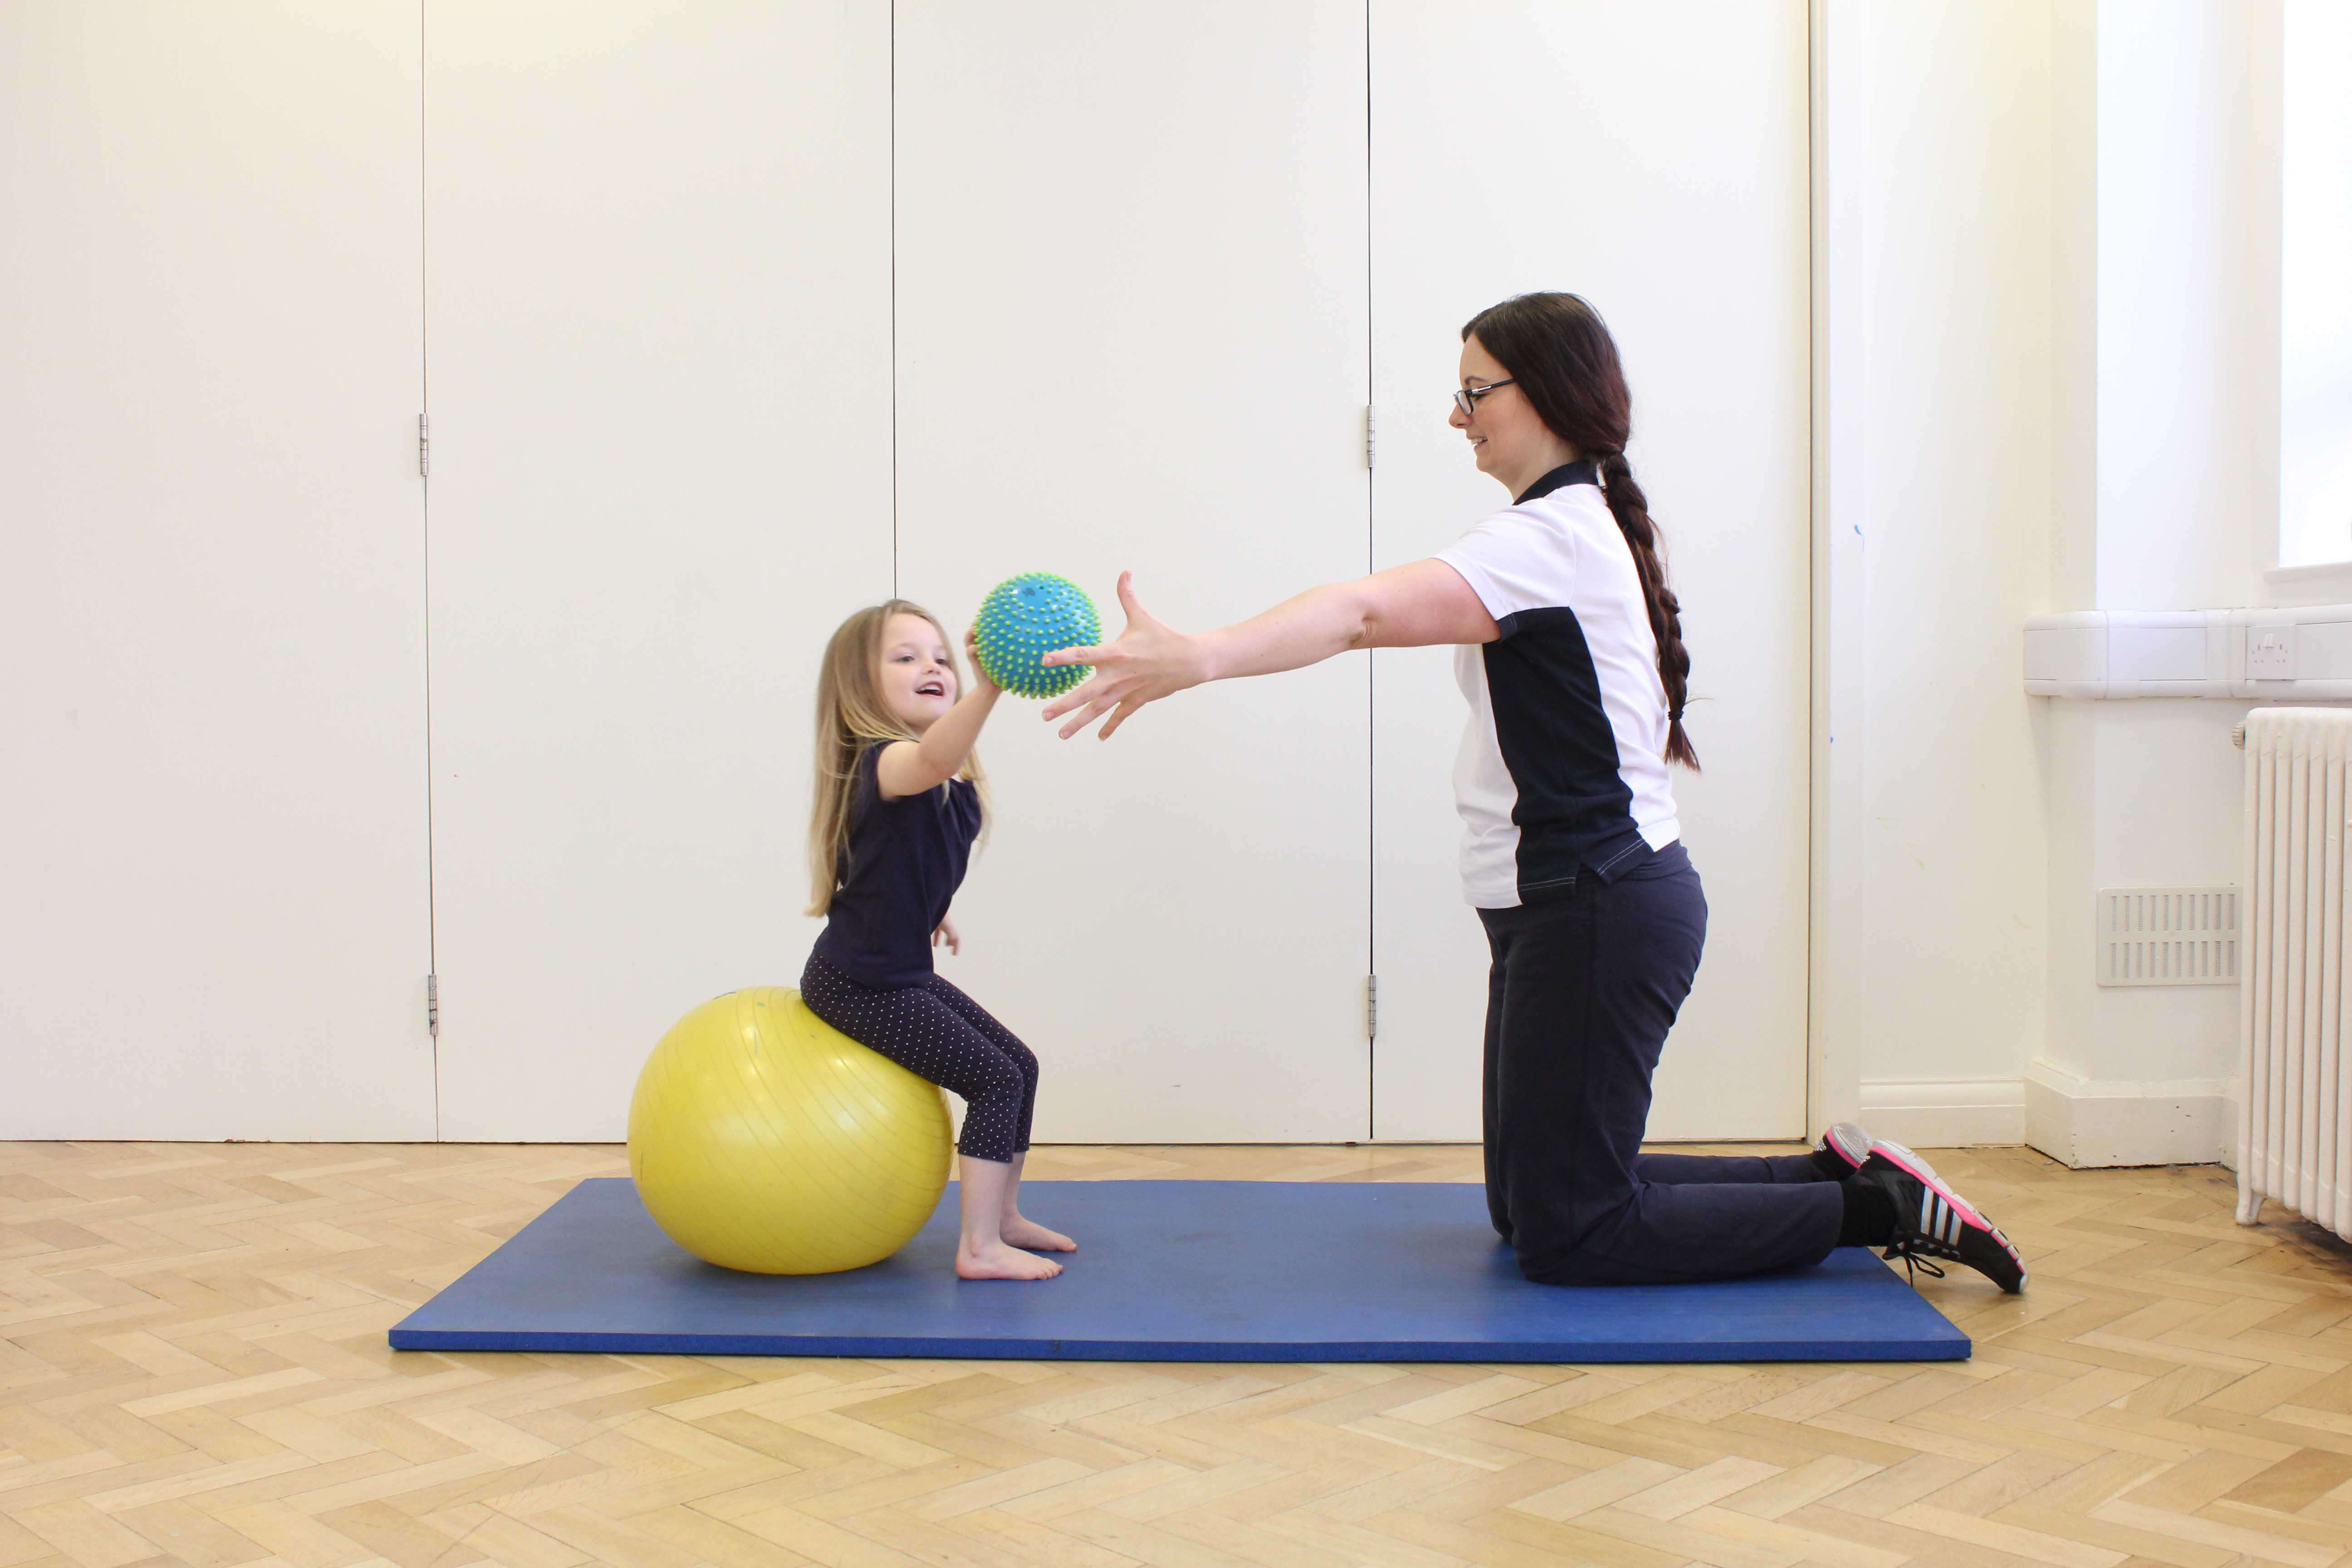 Progressive strengthening and balance exercises to develop functional mobility, led by a paediatric physiotherapist